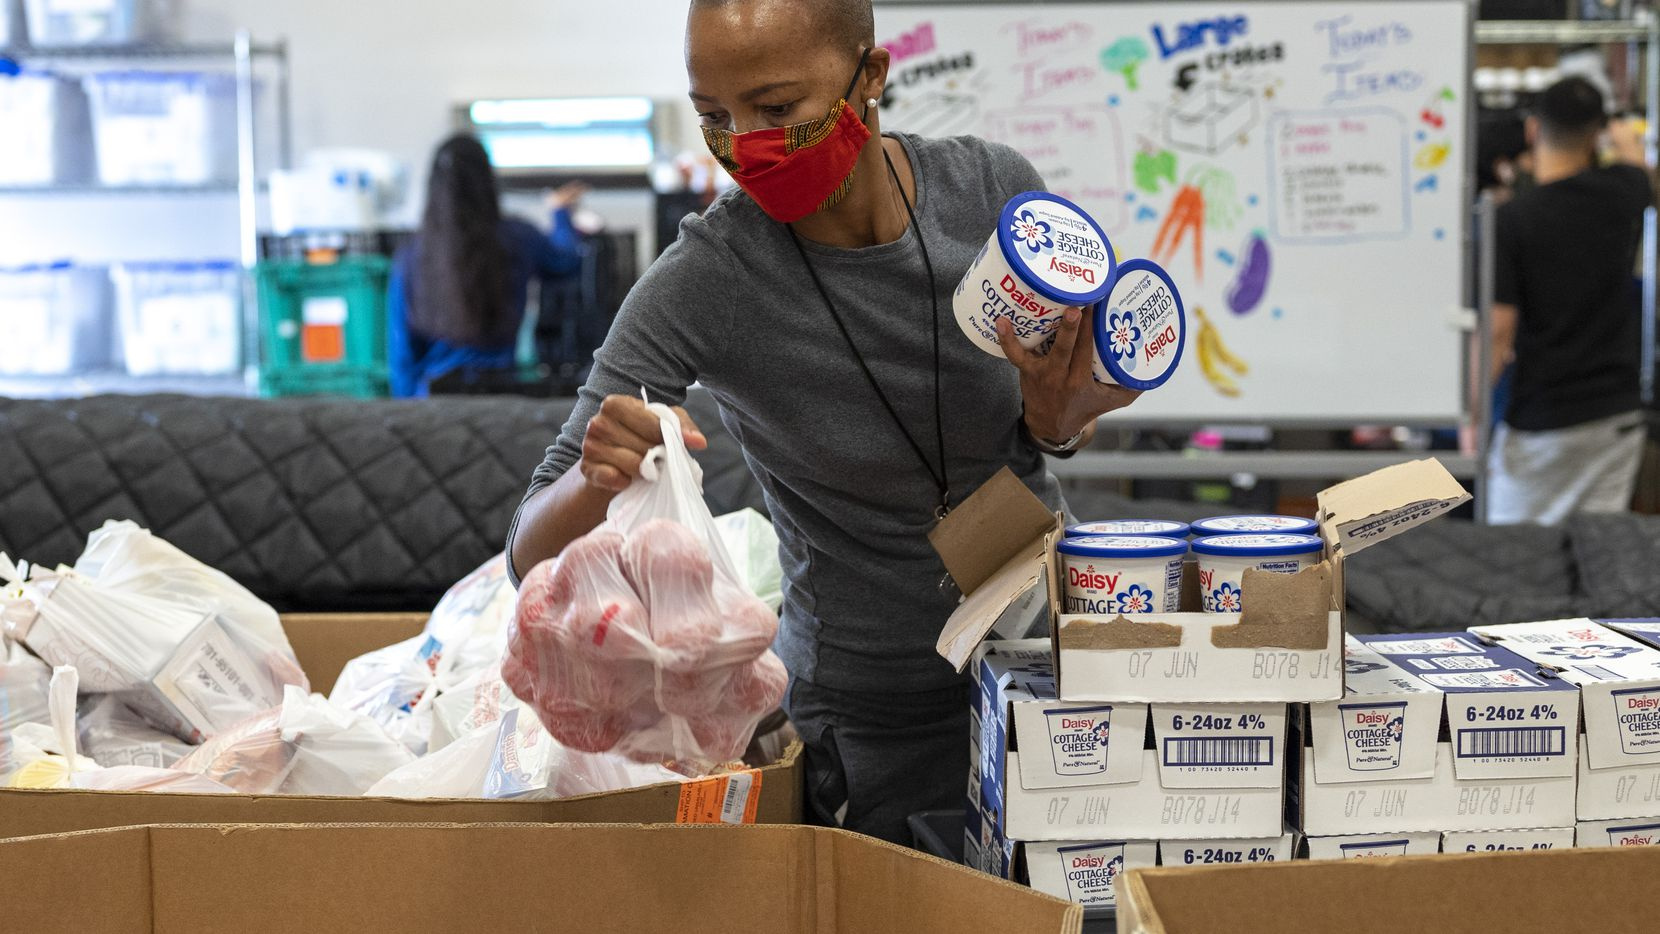 """Volunteer Dineo Gaofhiwe-Ingram gathers items like cottage cheese and fruits to pack in boxes for families in need at Crossroads Community Services in South Dallas. """"I wanna help and make a difference because there's a need,"""" she says. """"That's really why I'm doing it. Just to help."""""""